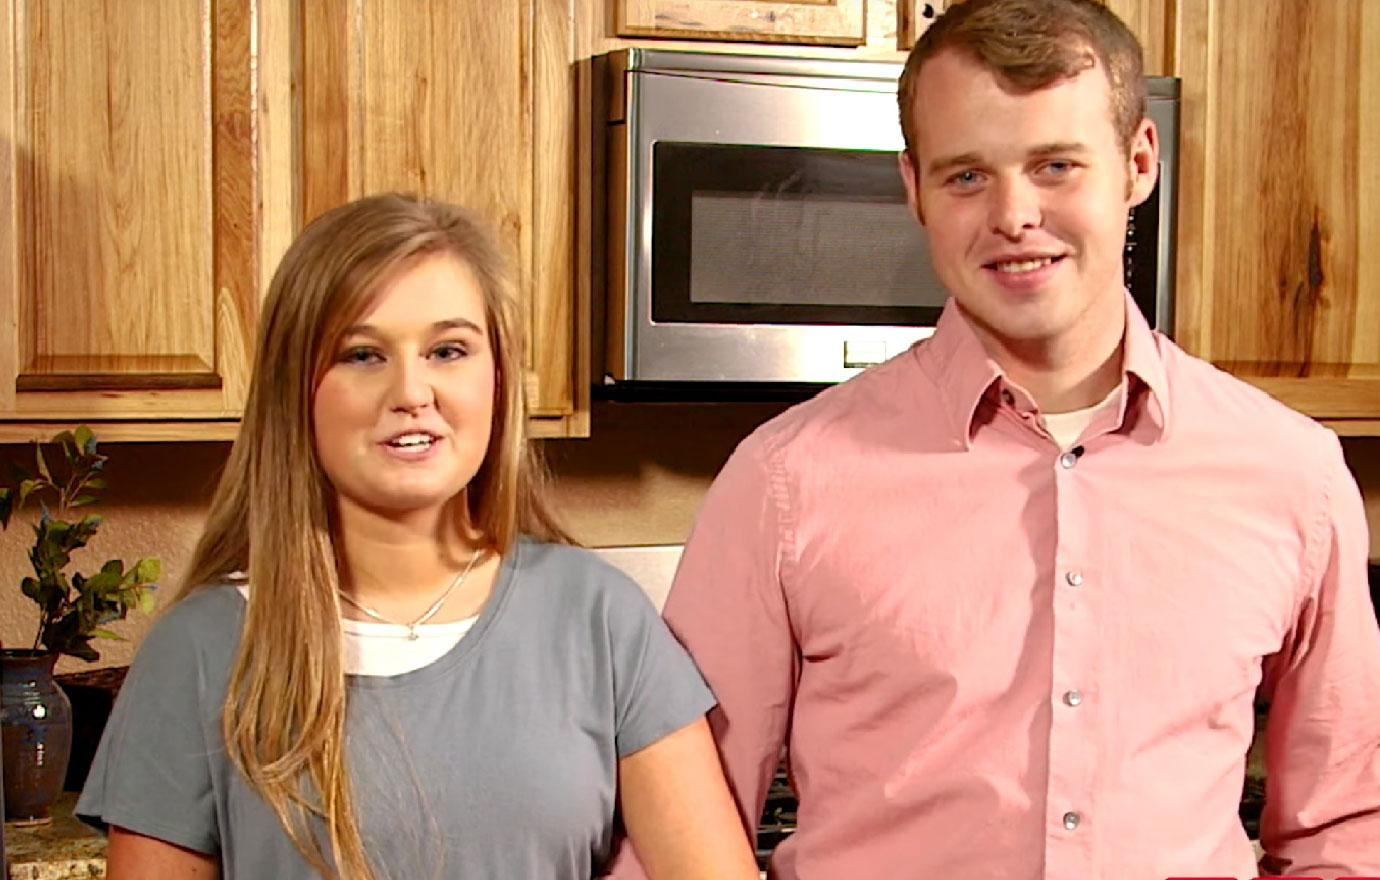 Duggar Family Reveals Baby Gender